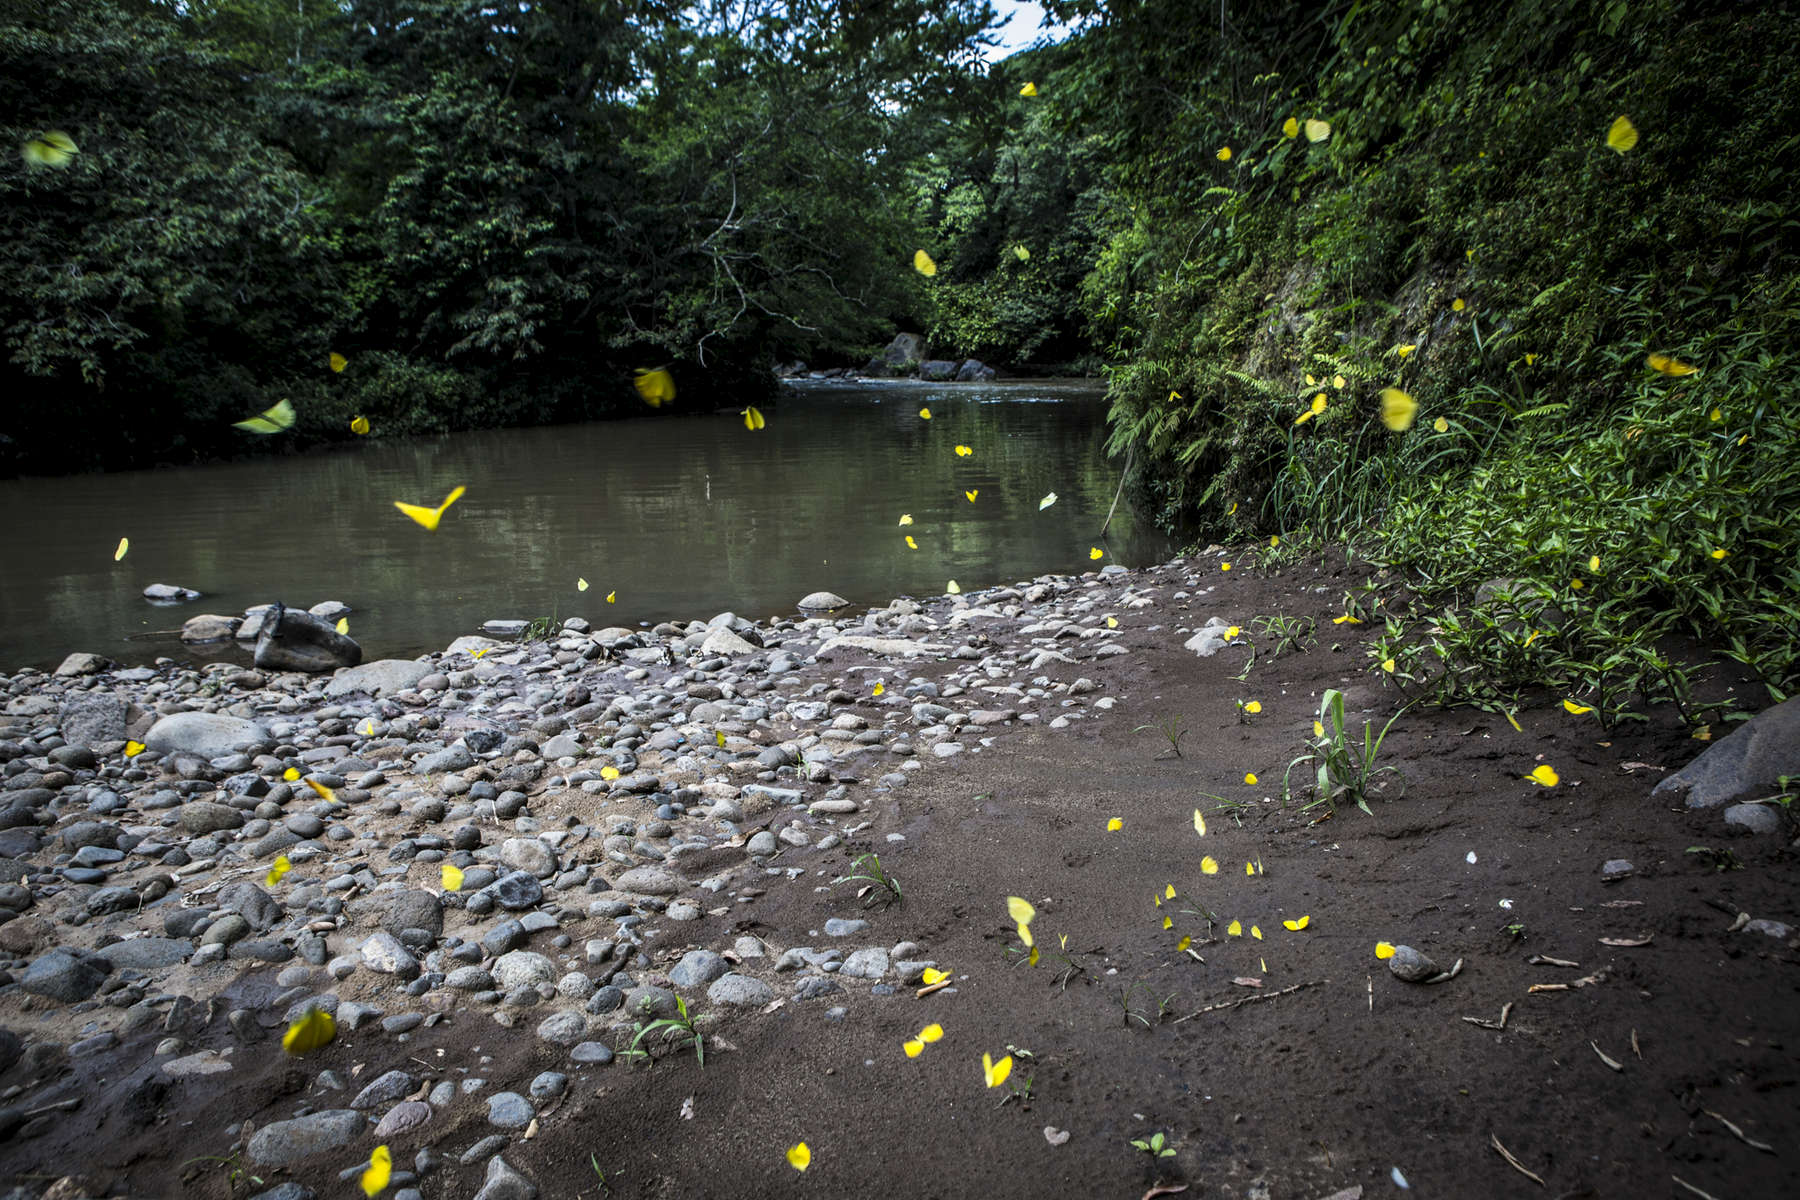 San Lorenzo, El Salvador- Butterflies fly by the Rio Pampe, one of the most heavily effected areas during the Ingenio La Magdalena molasses spill in San Lorenzo, El Salvador on Monday, June 25, 2018. In May 2016, nine thousand gallons of molasses spilled into the San Lorenzo and adjoining rivers killing life in and around the river for 80km and contaminating the water supply for thousands of people. After two lawsuits and millions of dollars in fines, Ingenio La Magdalena has effectively cleaned up the disaster but the damage has taken its toll on the wildlife, esp fish, that the local communities depend so heavily on. Many residents affected by the spill have yet to be compensated for damages to their livelihoods. (Jane Hahn)